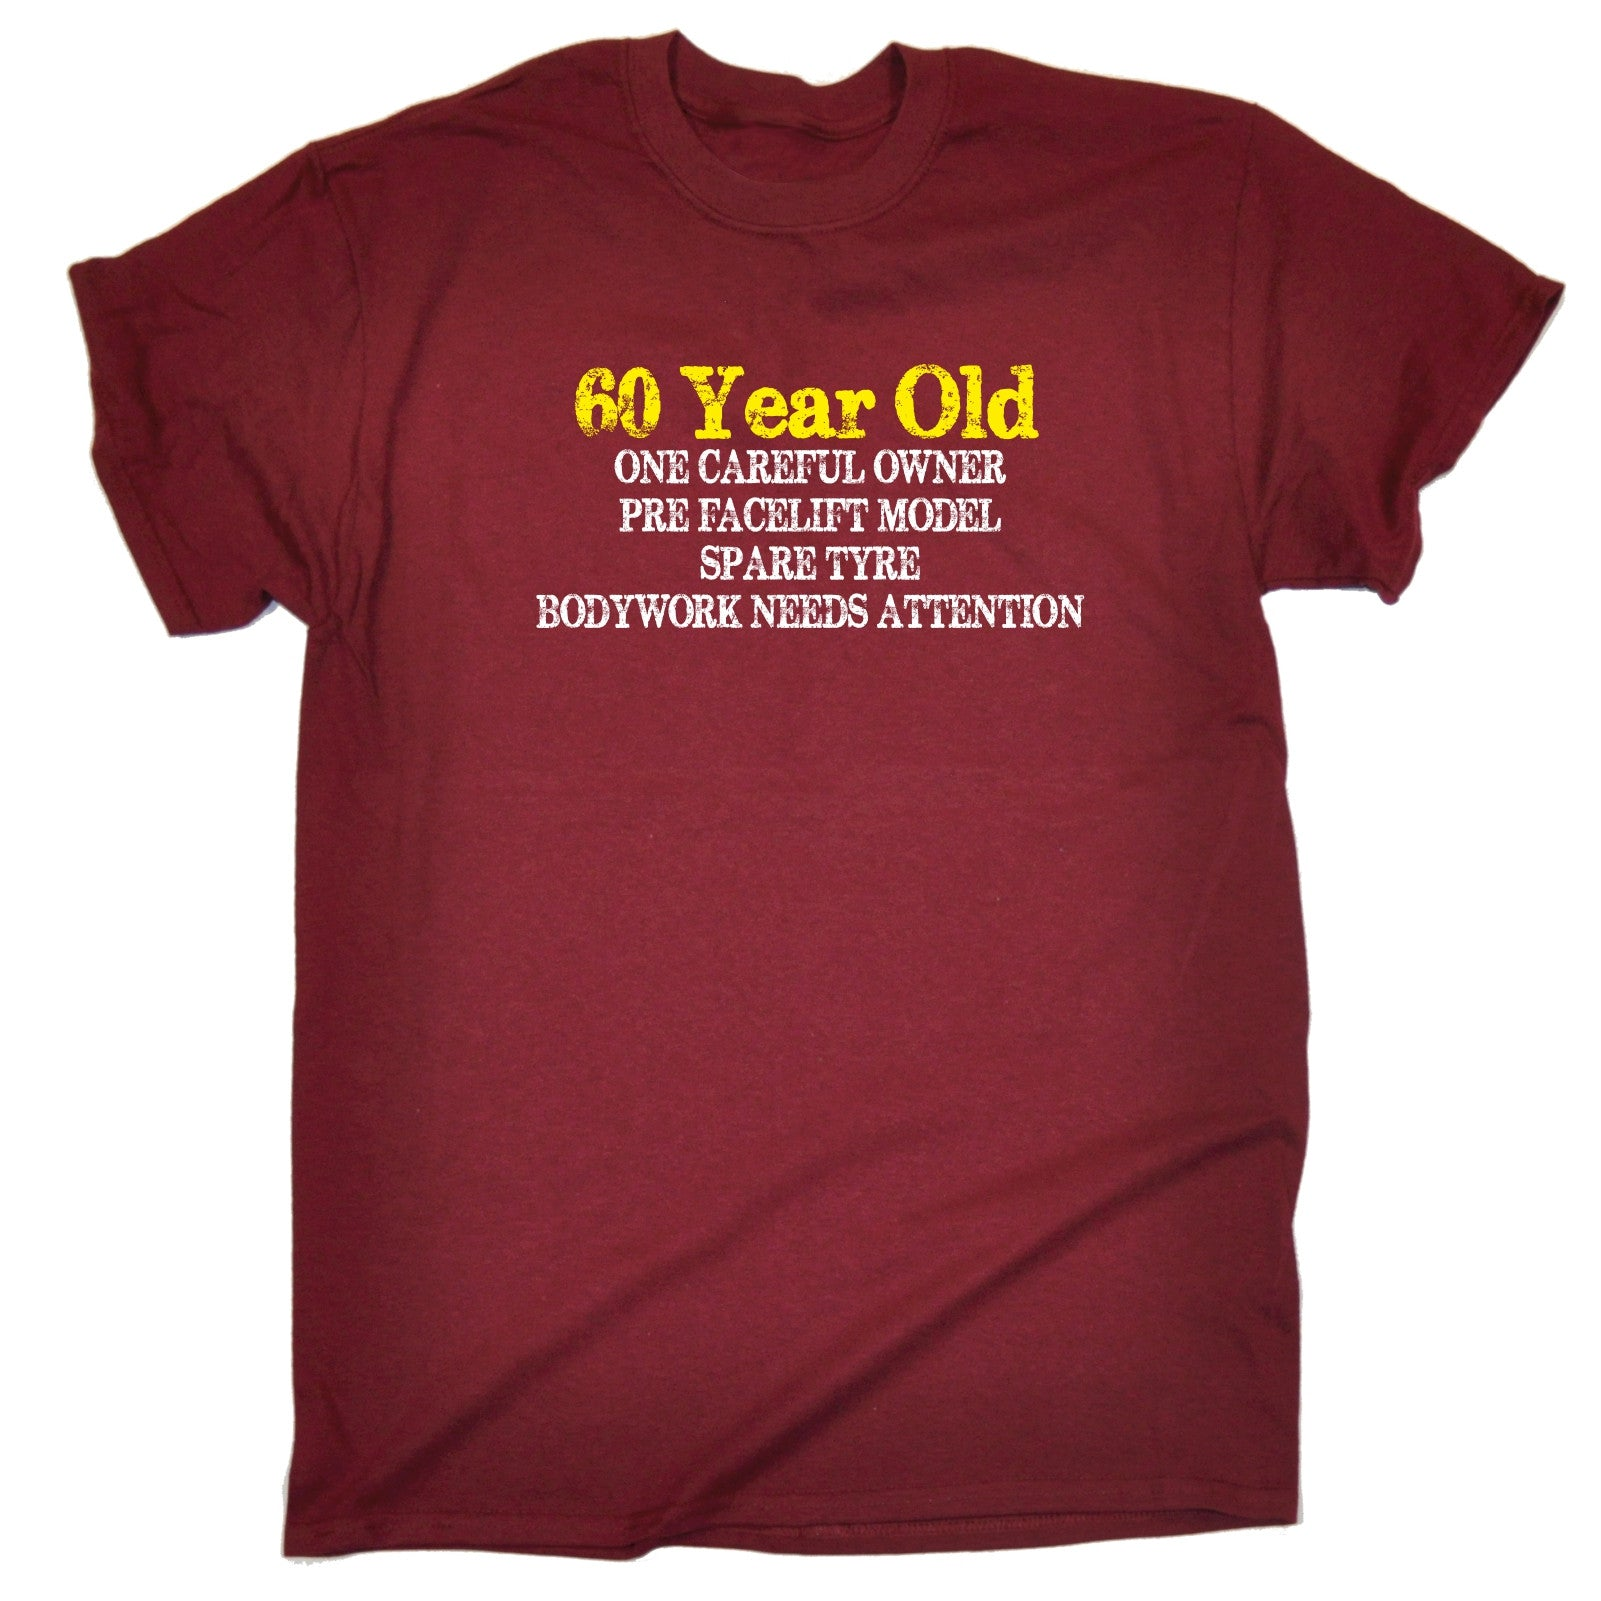 60 Year Old One Careful Owner T SHIRT